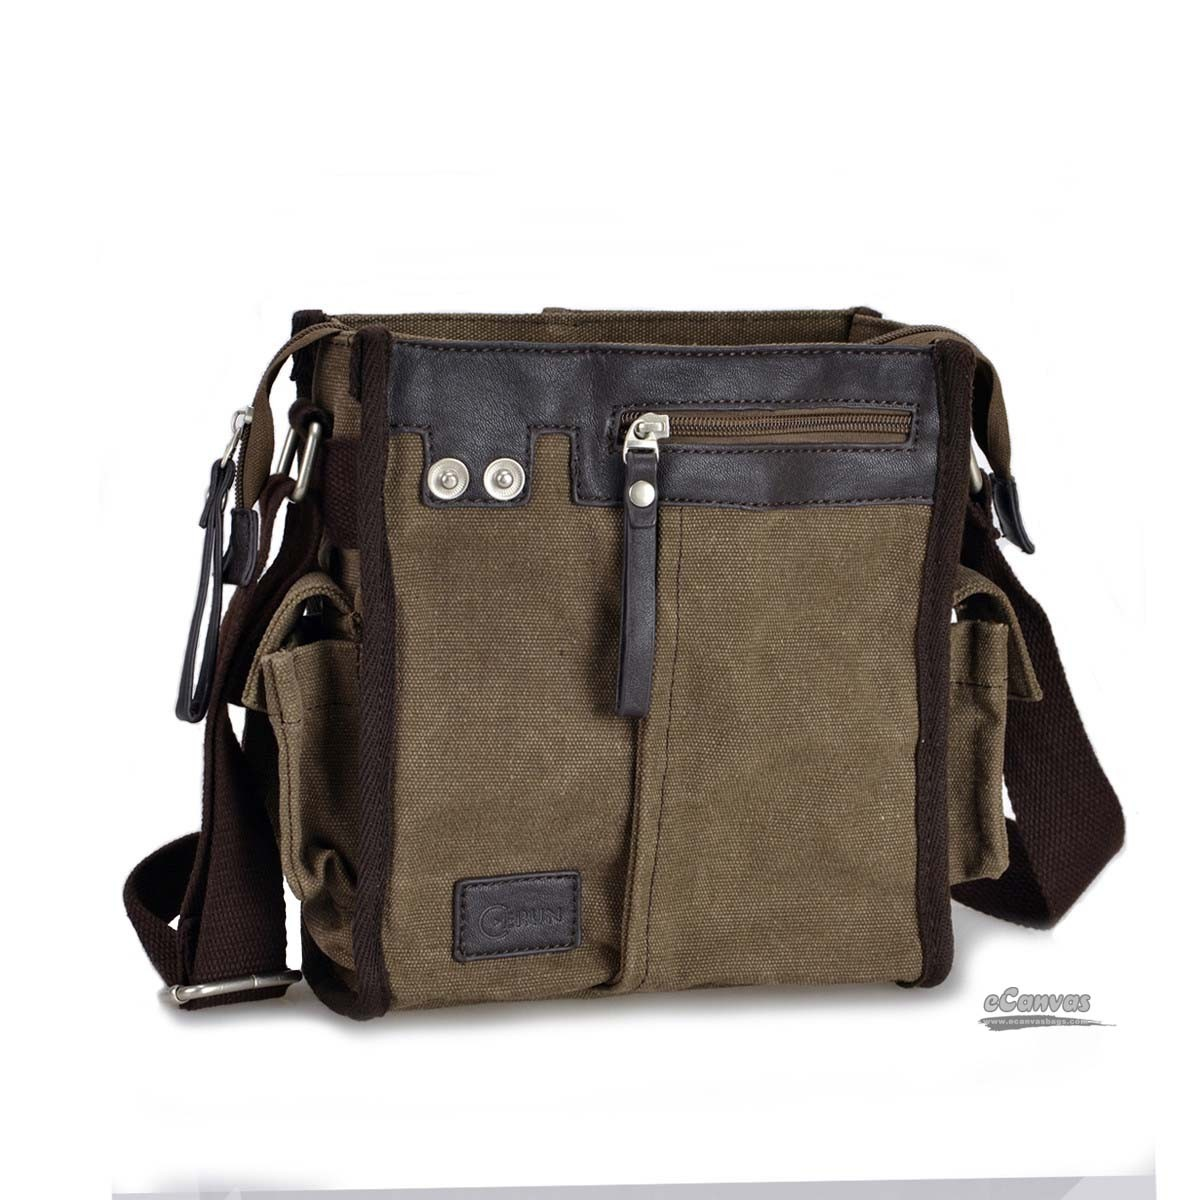 Reply))) You Cross body messenger bag are